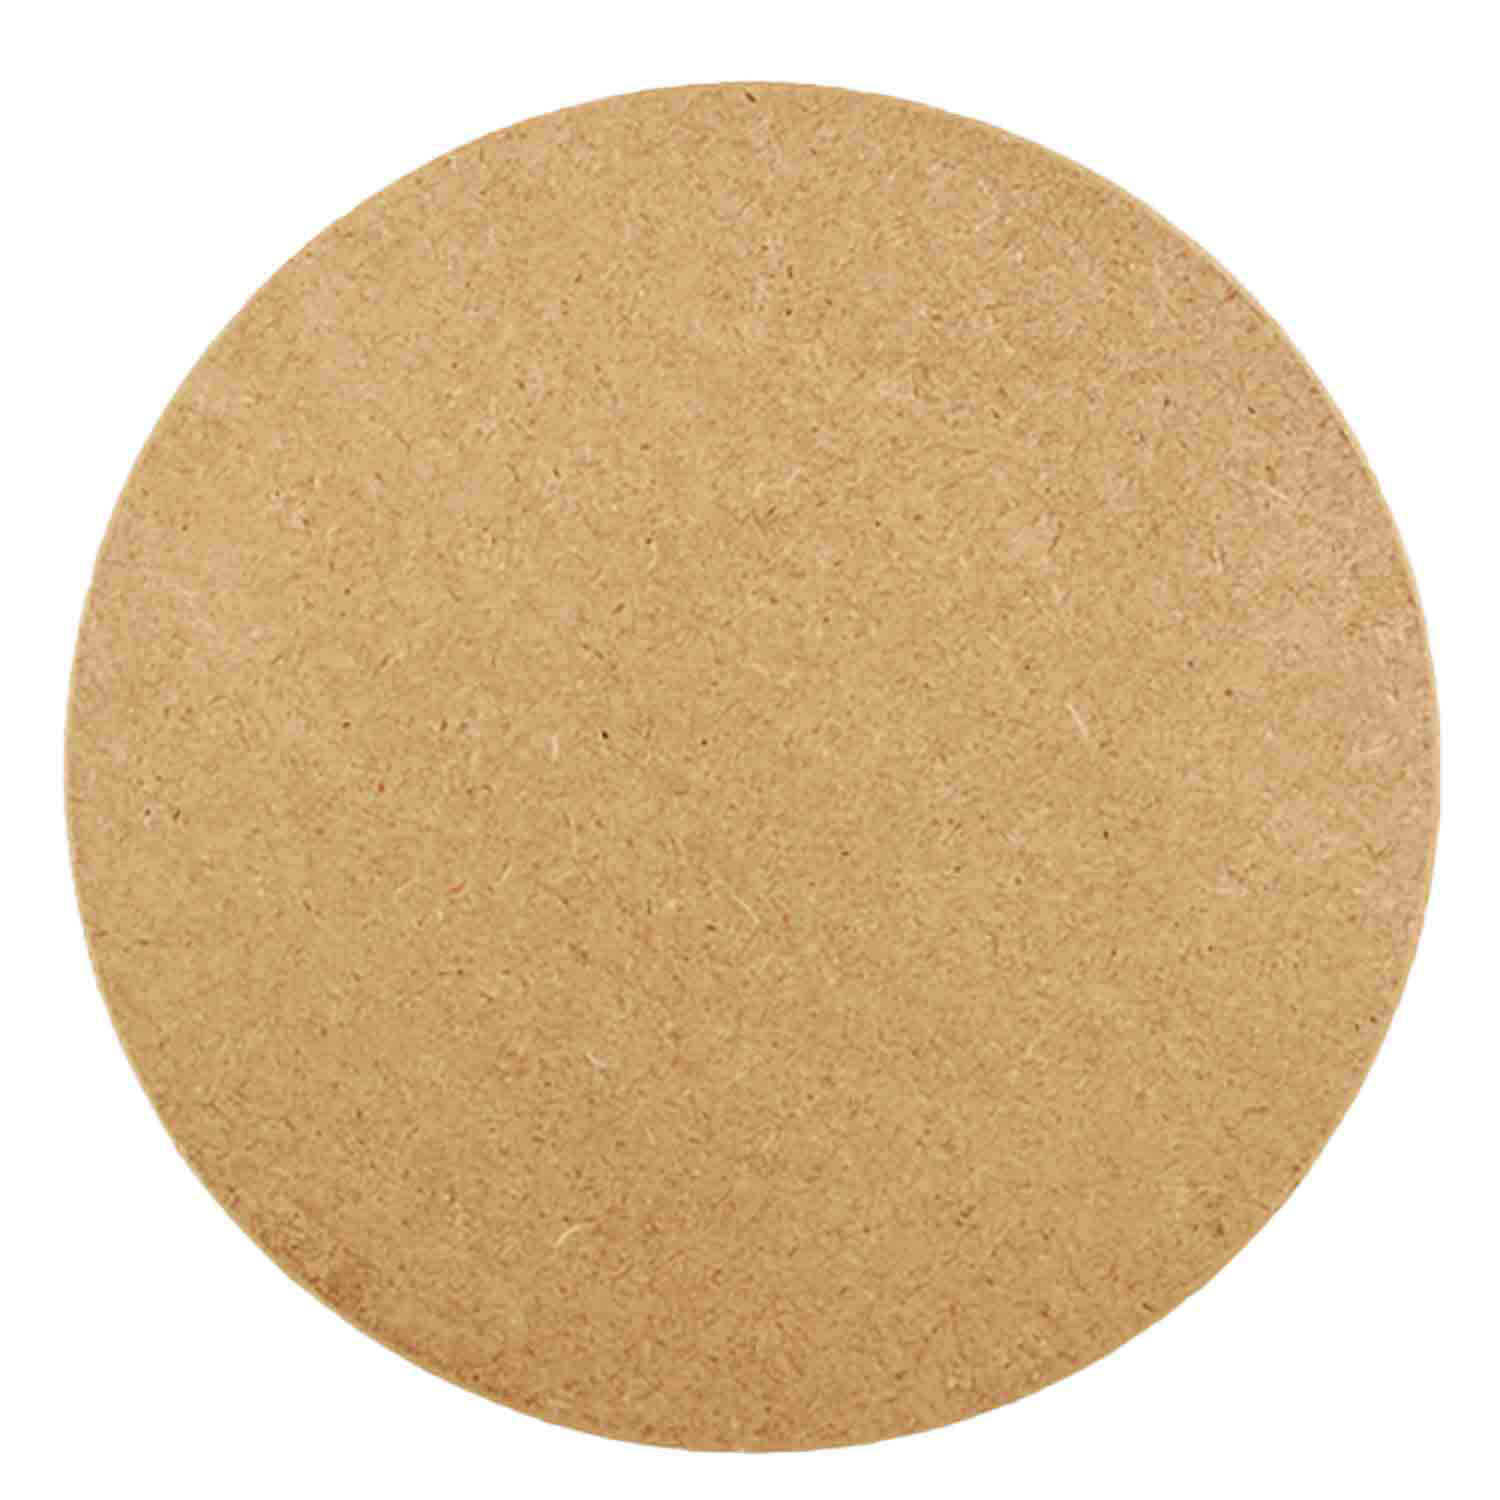 "15"" Round Masonite Cake Board"